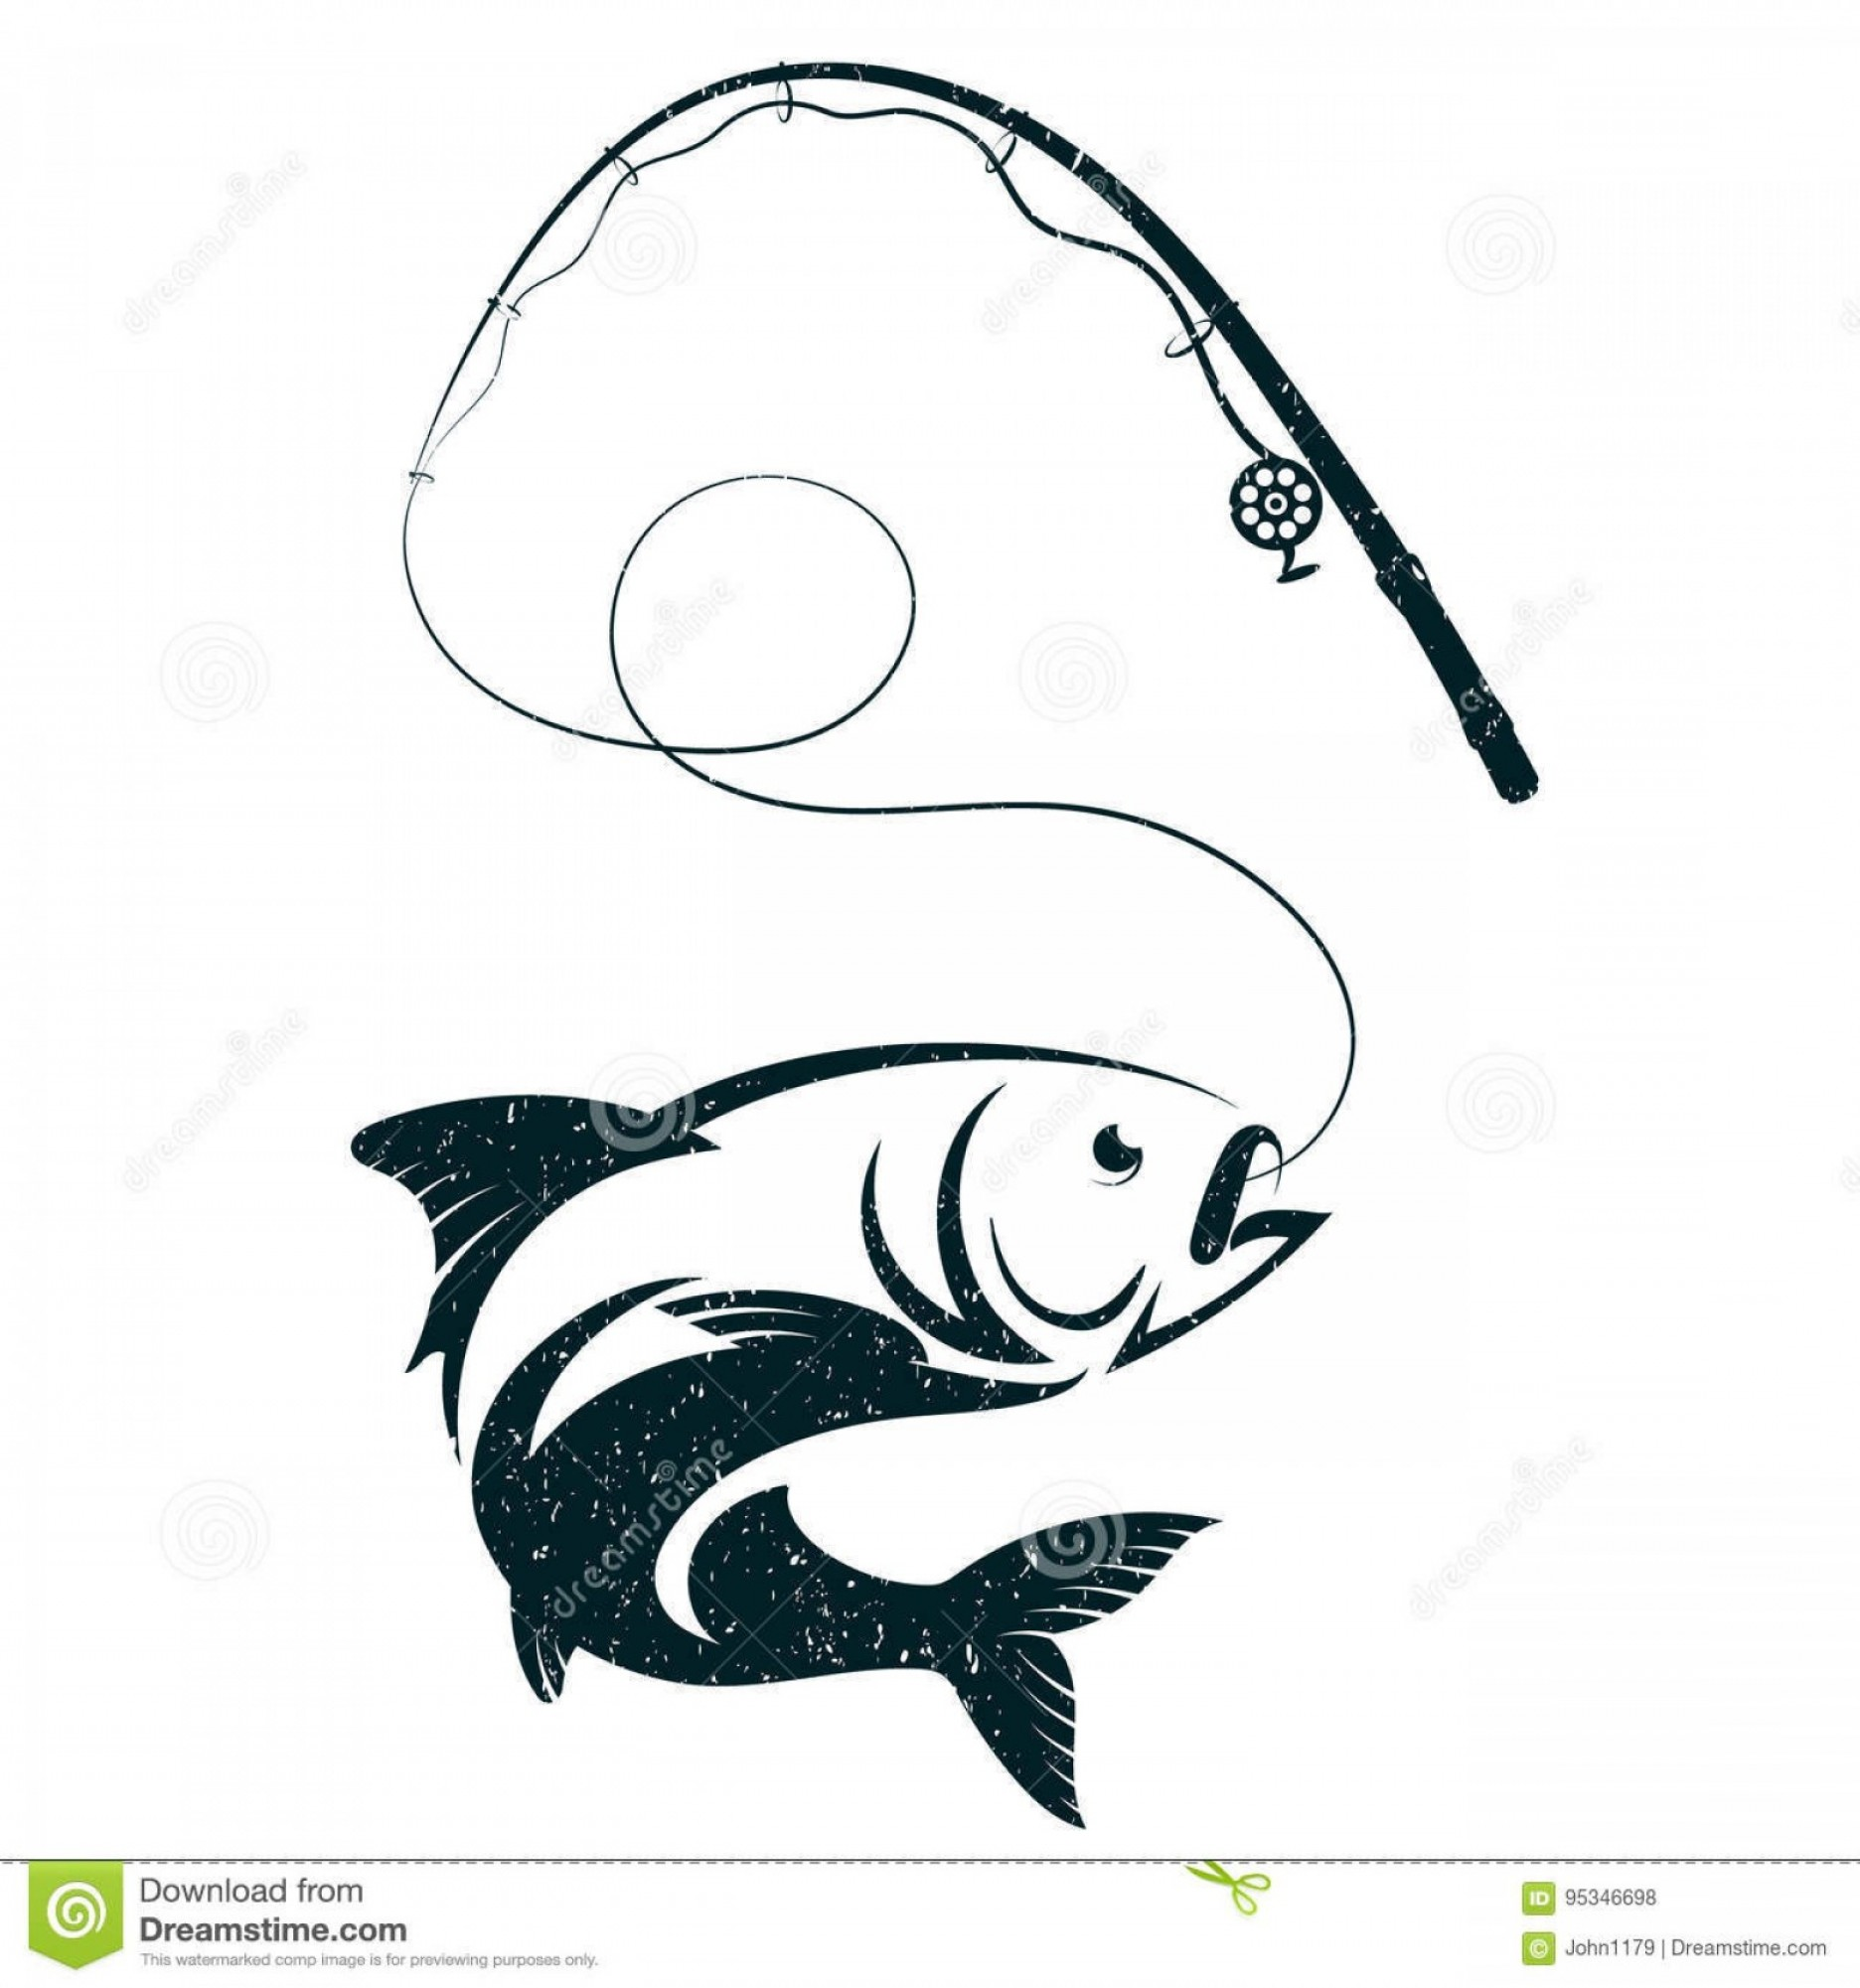 Fishing Pole Silhouette Vector: Stock Illustration Fish Hook Fishing Rod Silhouette Vector Image